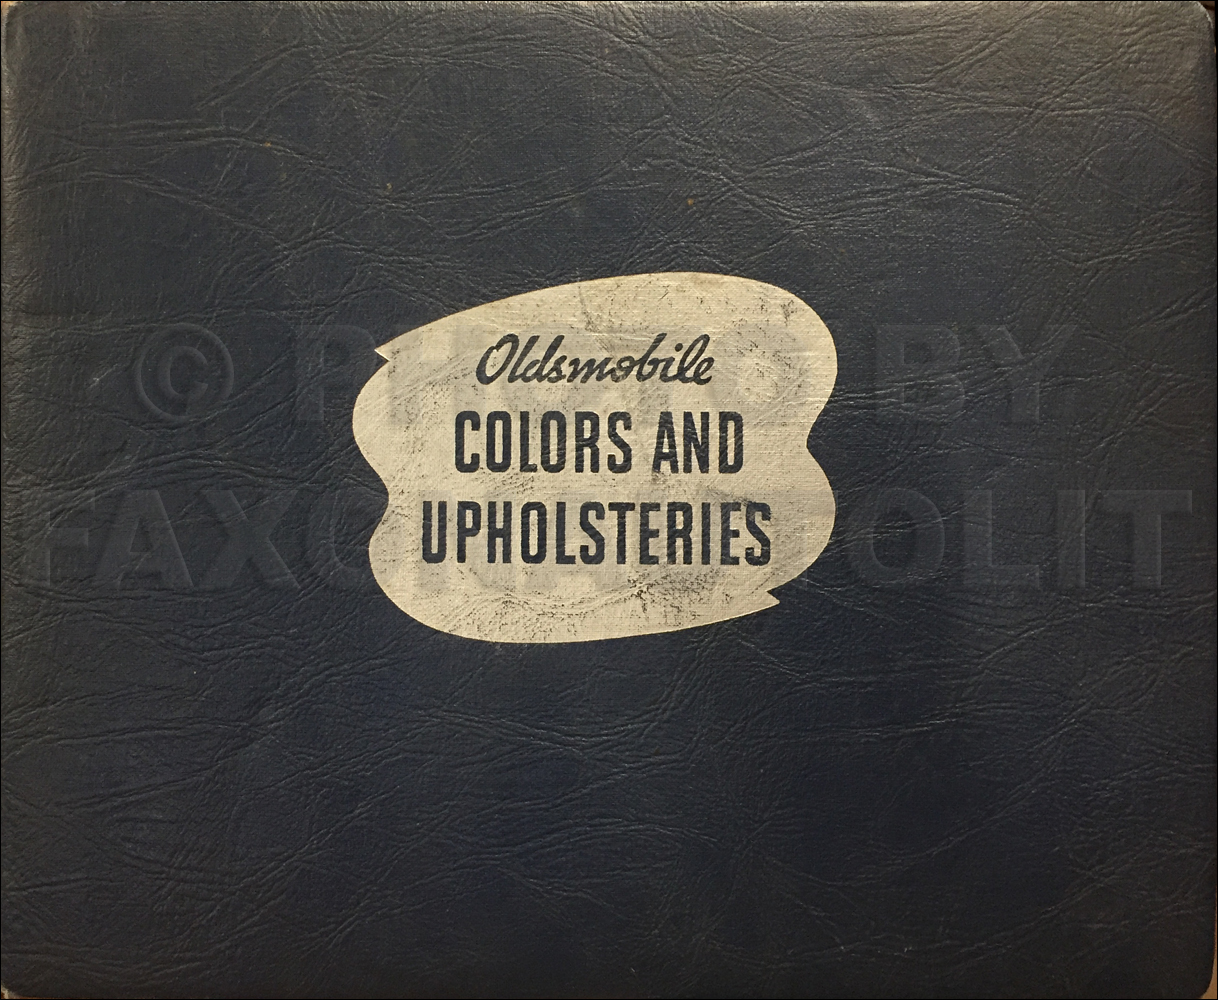 1940 Oldsmobile Color & Upholstery Dealer Album Original